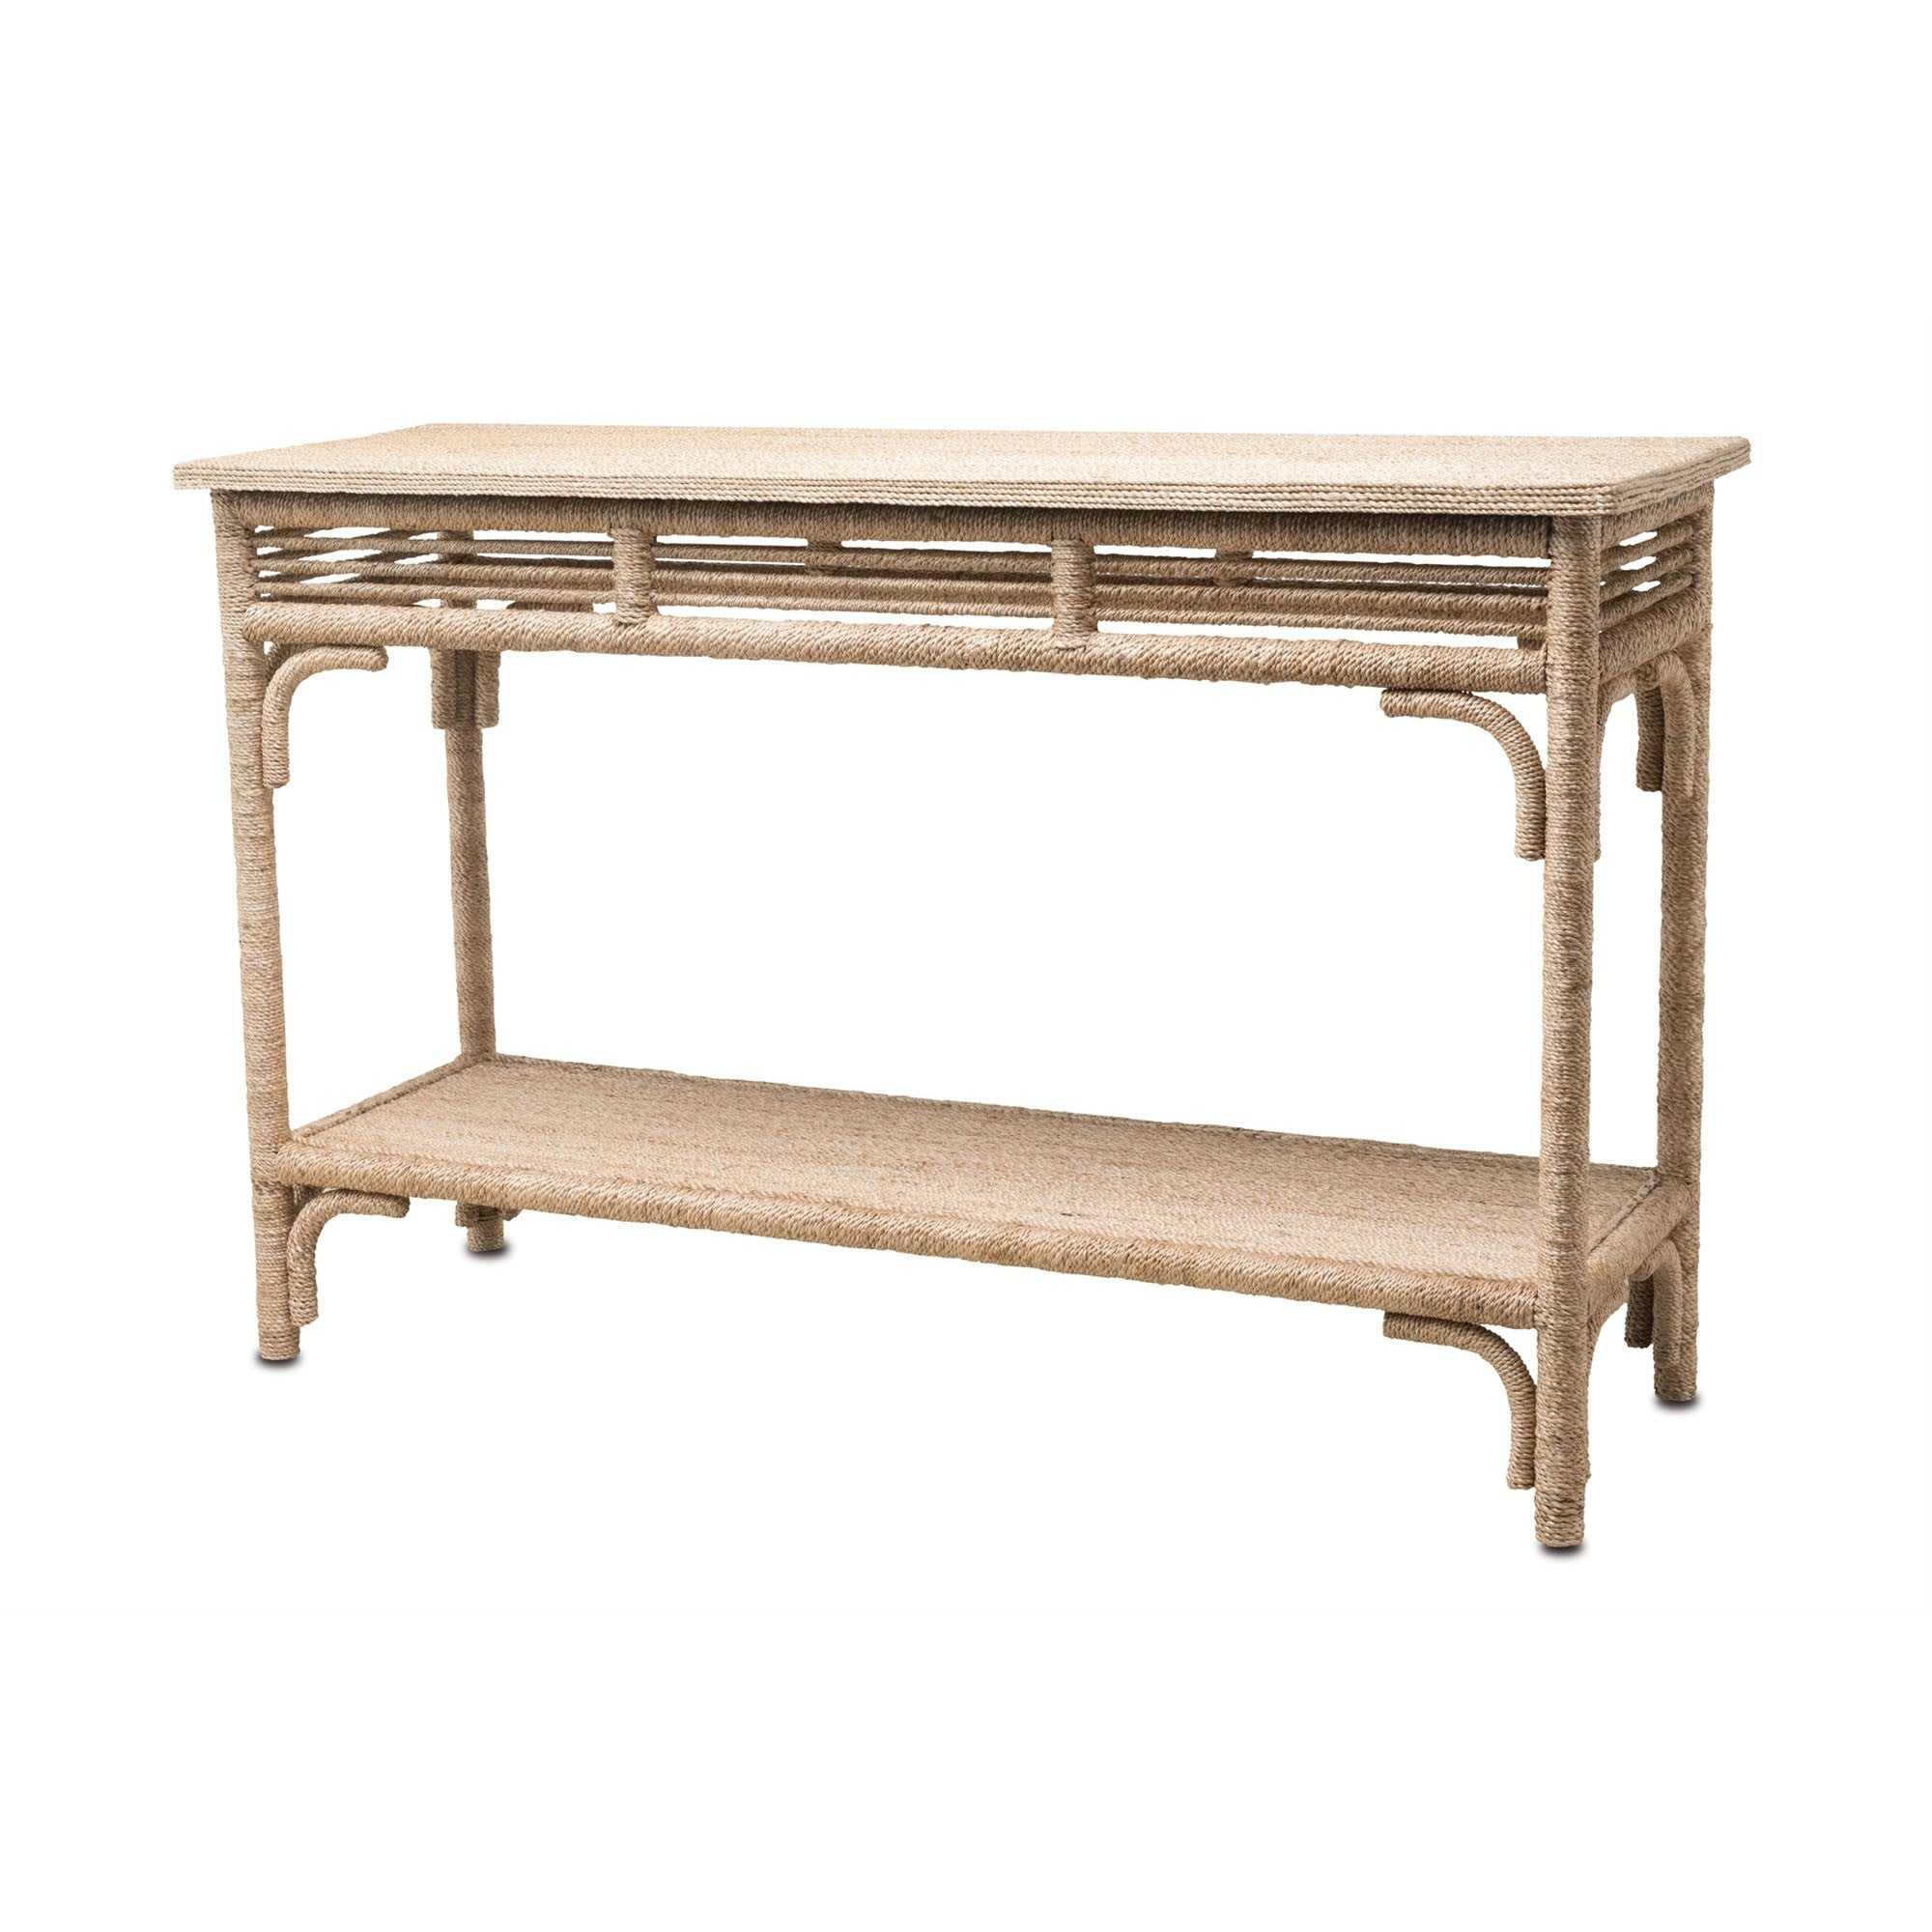 Currey and Co - Olisa Console Table